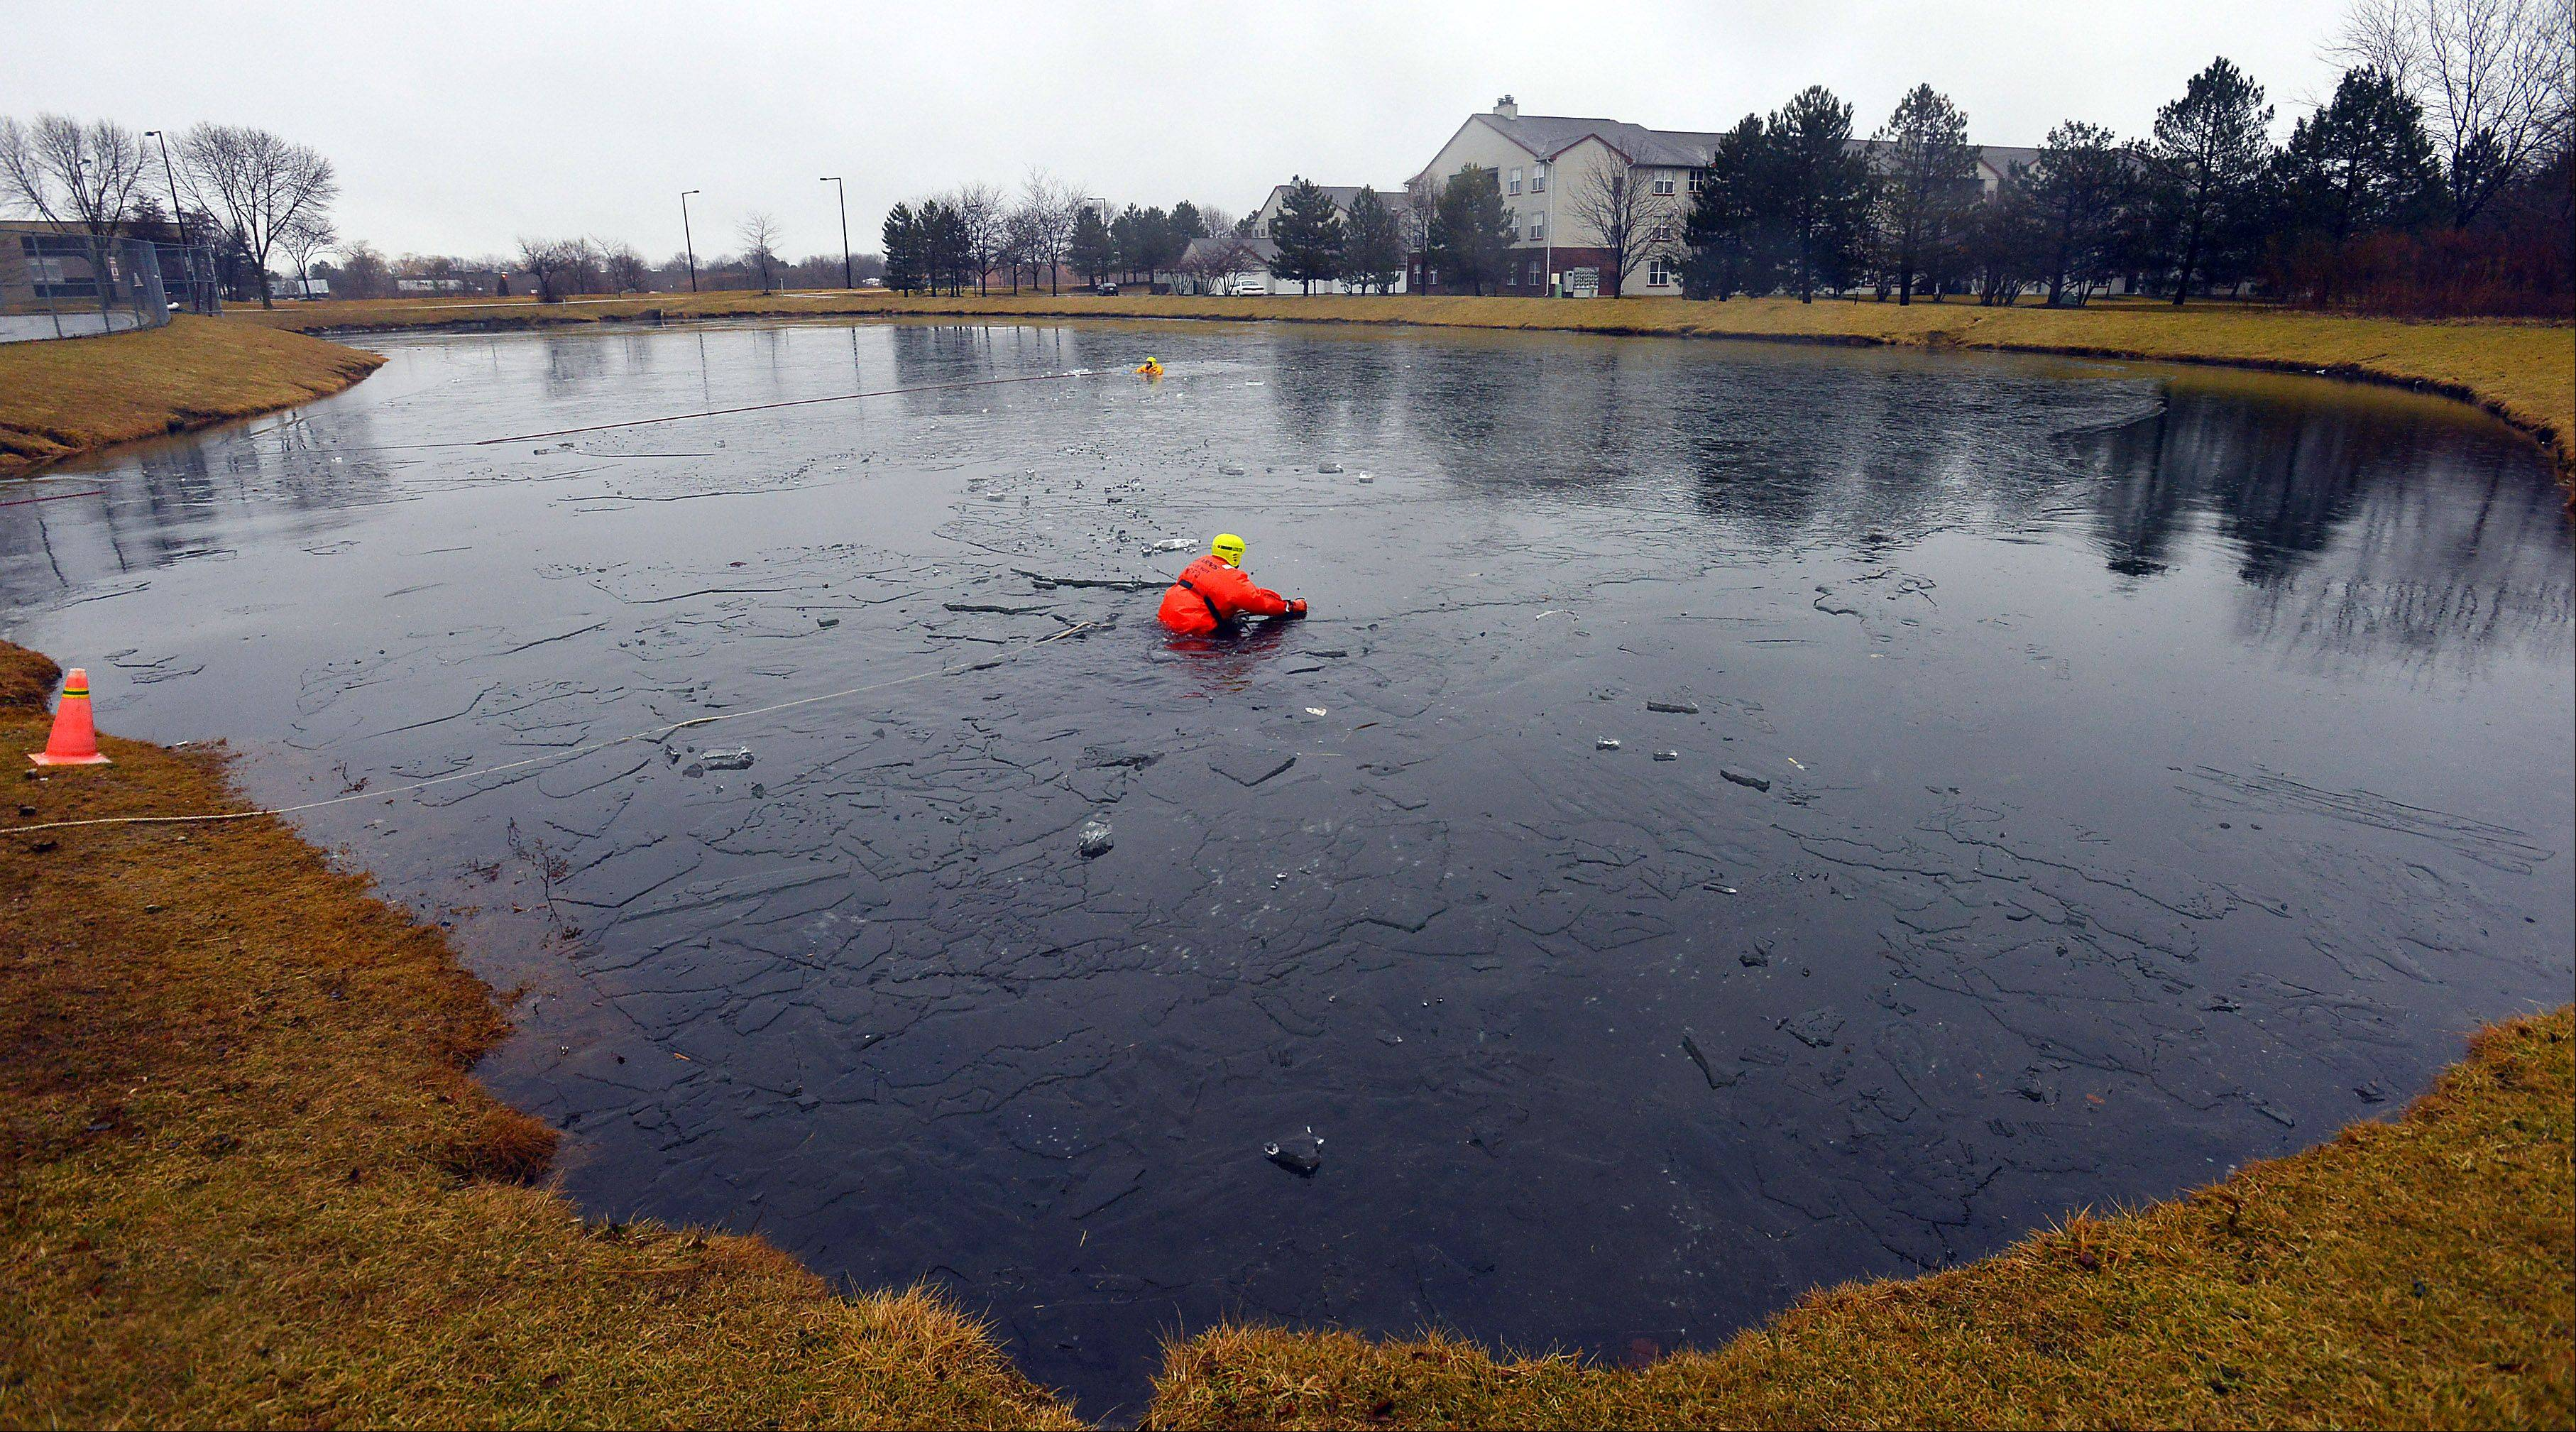 Firefighters from different departments from across the Northwest suburbs braved the elements to practice their ice rescue drills at the retention pond at the Combined Area Fire Training Facility in Buffalo Grove on Wednesday.